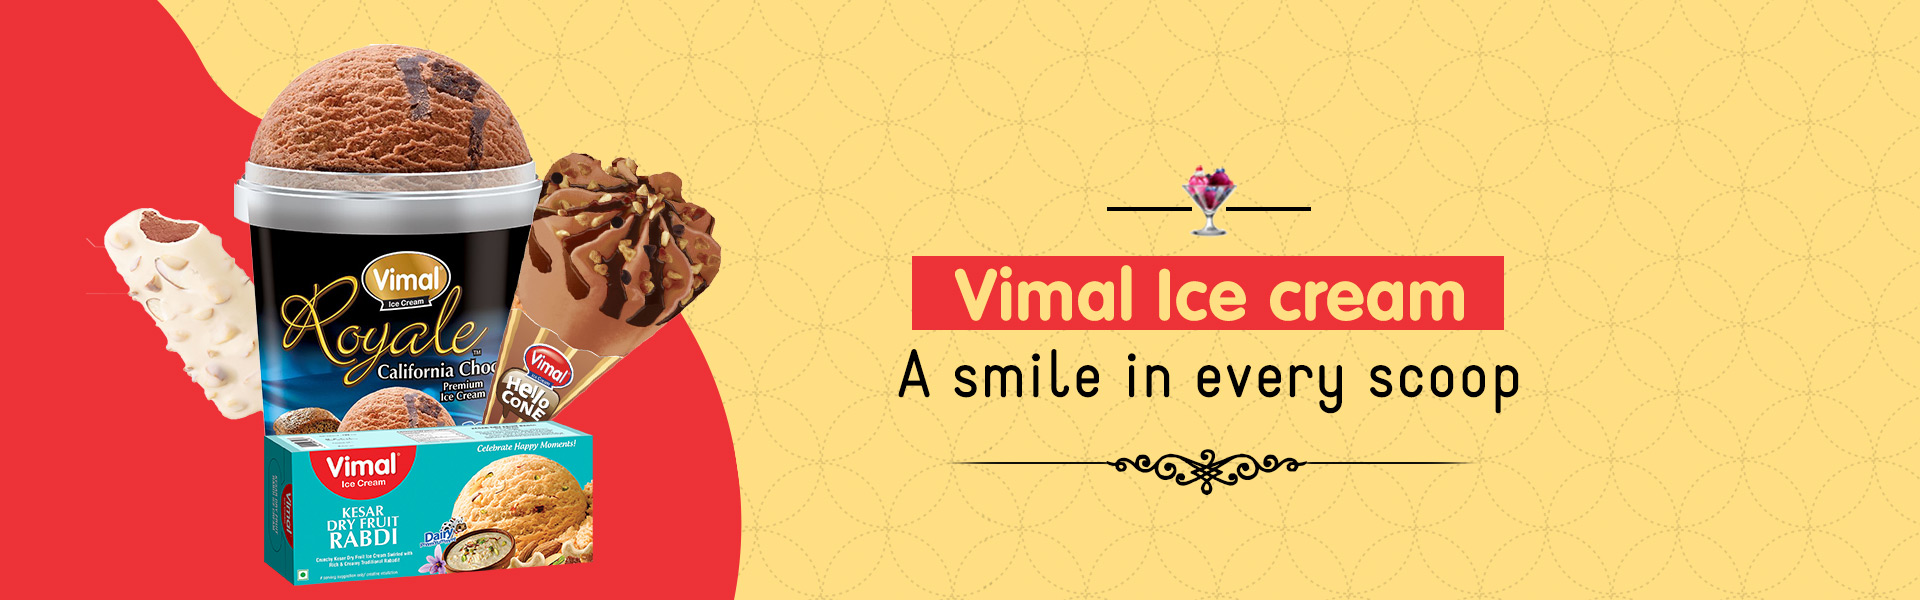 Vimal Ice Cream A Range of all kinds of Ice creams in Cups, Cones, Candies, Juices, Party Packs, Roll Cuts, Cassattas, Bulk Packs with a wide range of Flavors.